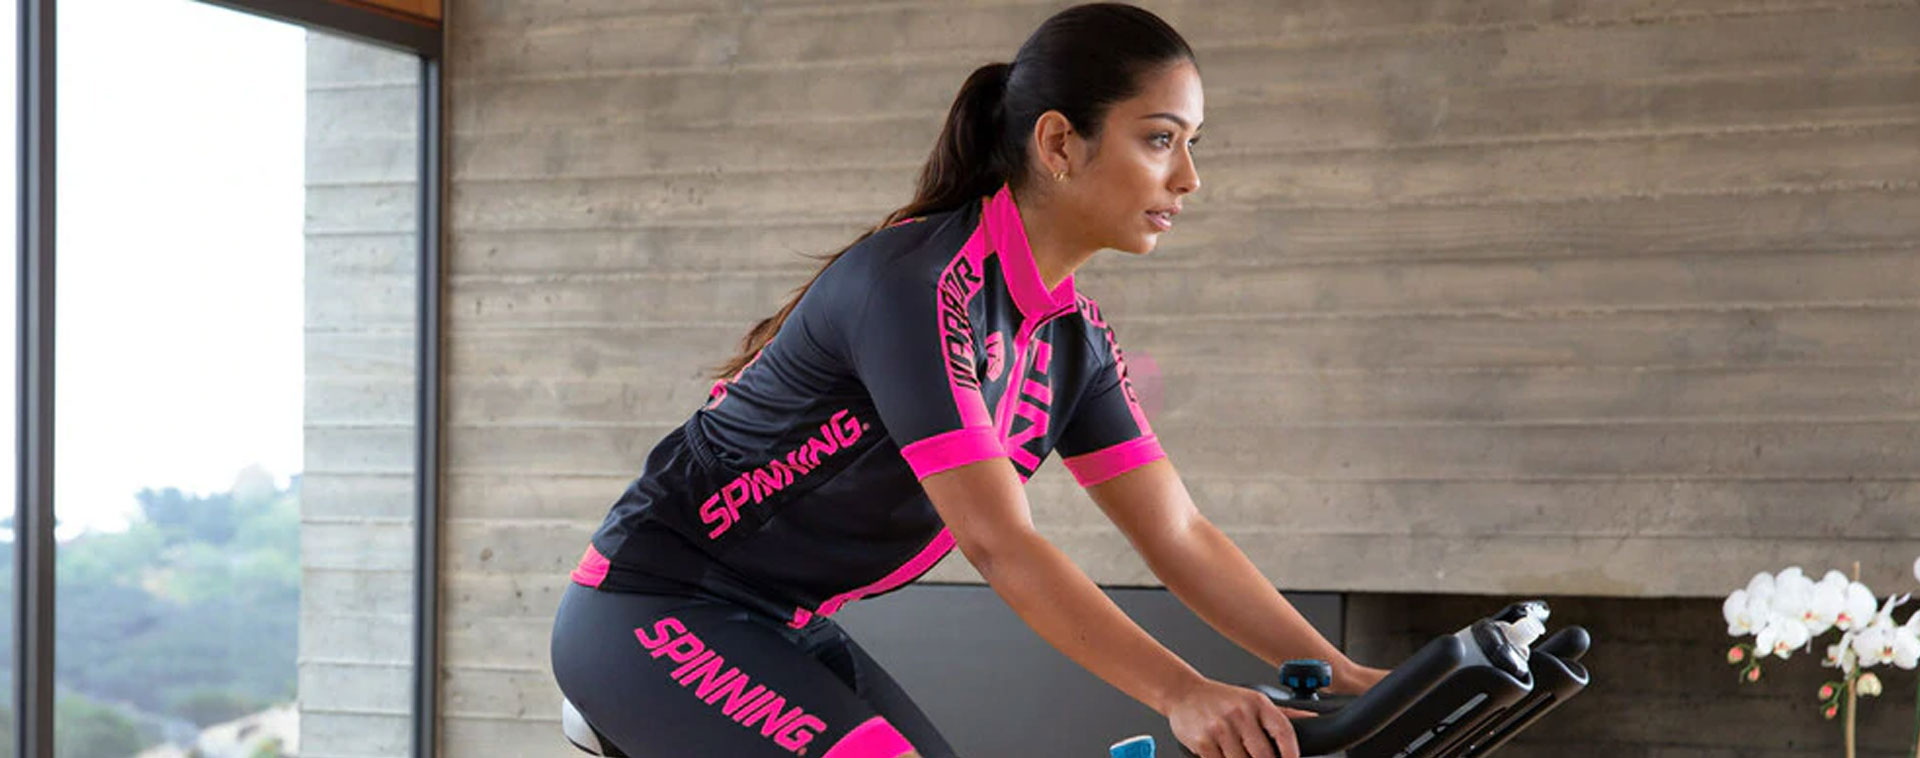 SP - Cat - Clothing F Cycling